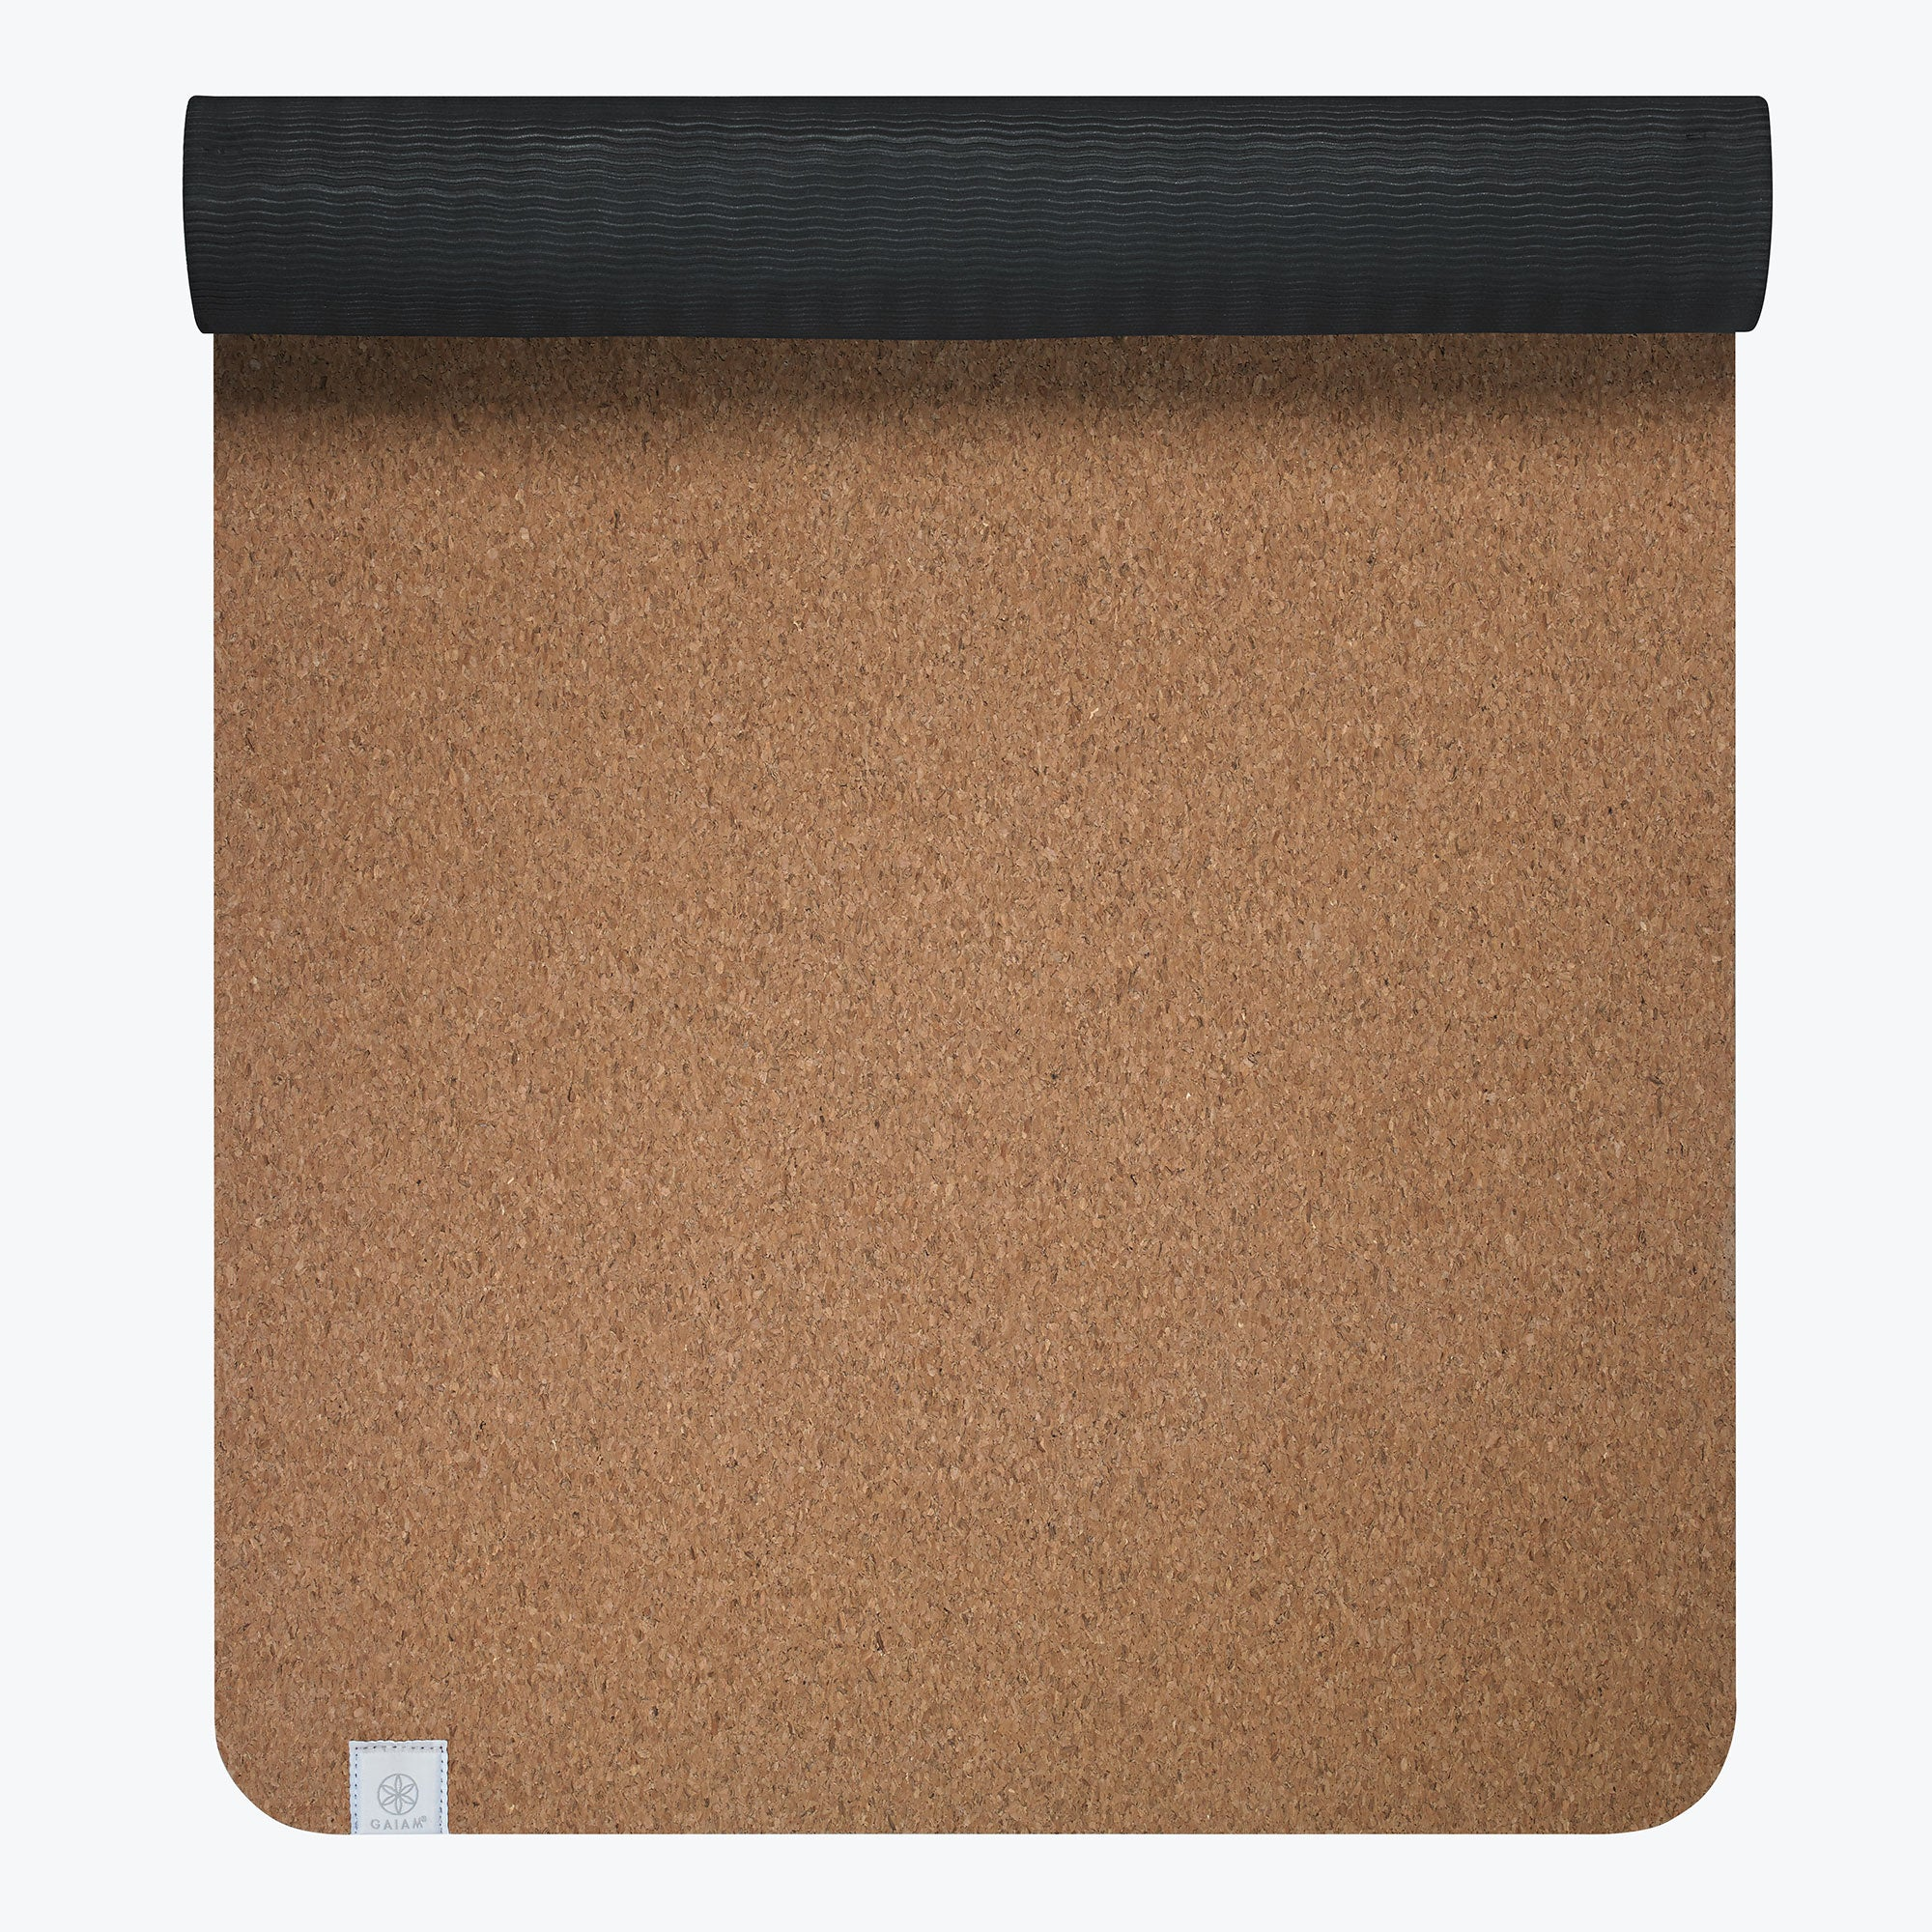 Image of Performance Cork Yoga Mat (5mm)